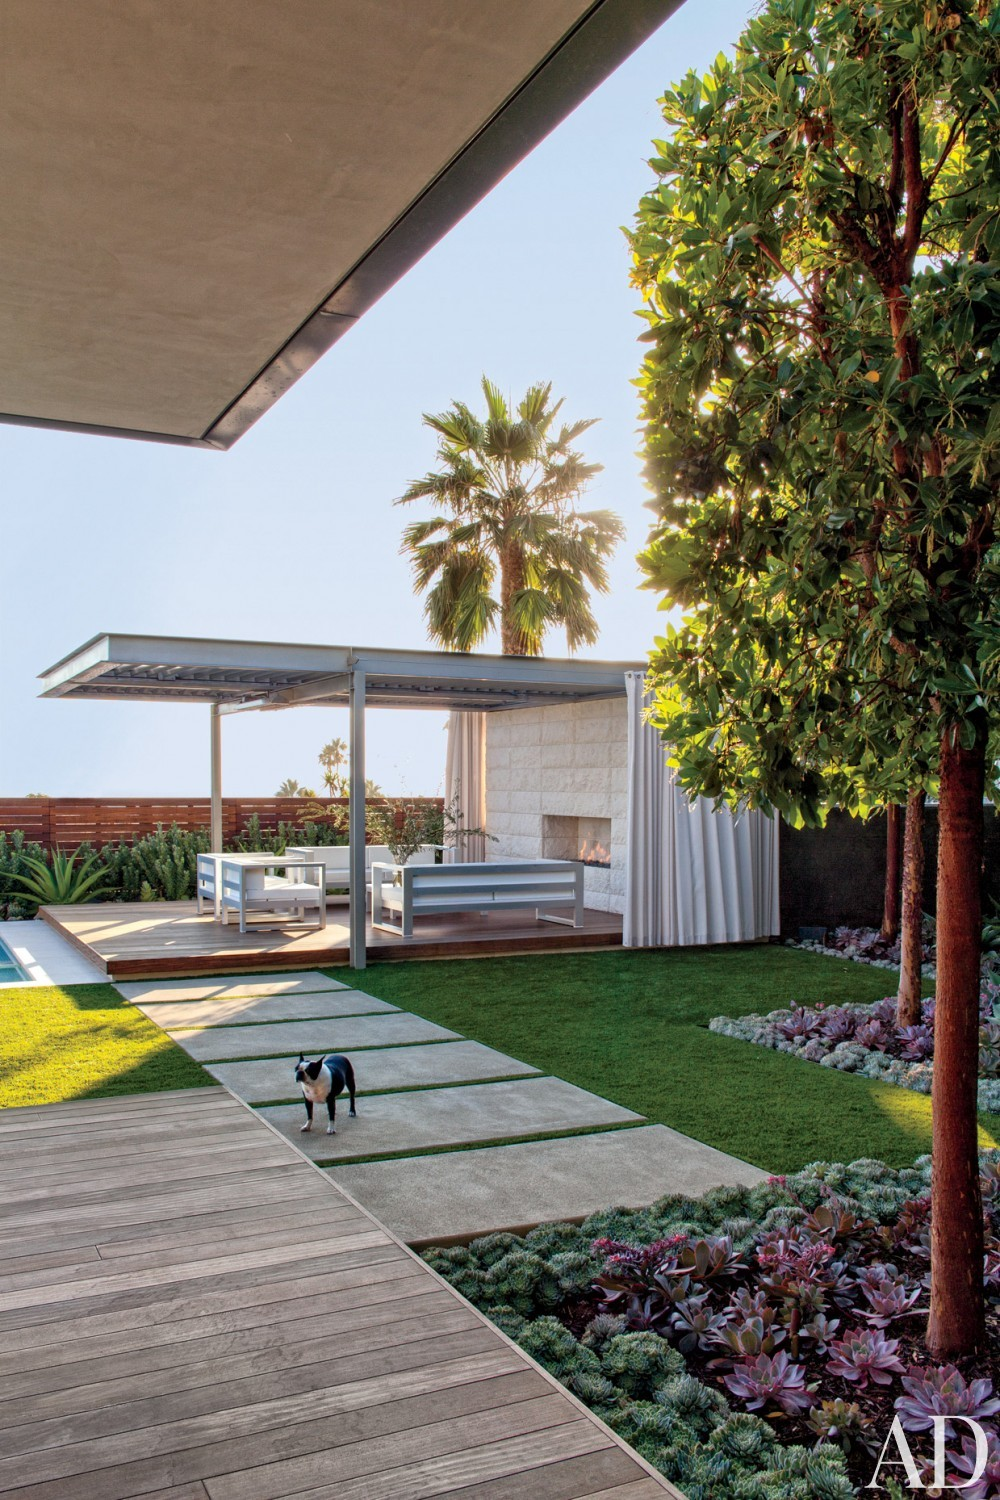 Modern Backyard by Sarah McElroy and Steven Ehrlich in Laguna Beach, CA